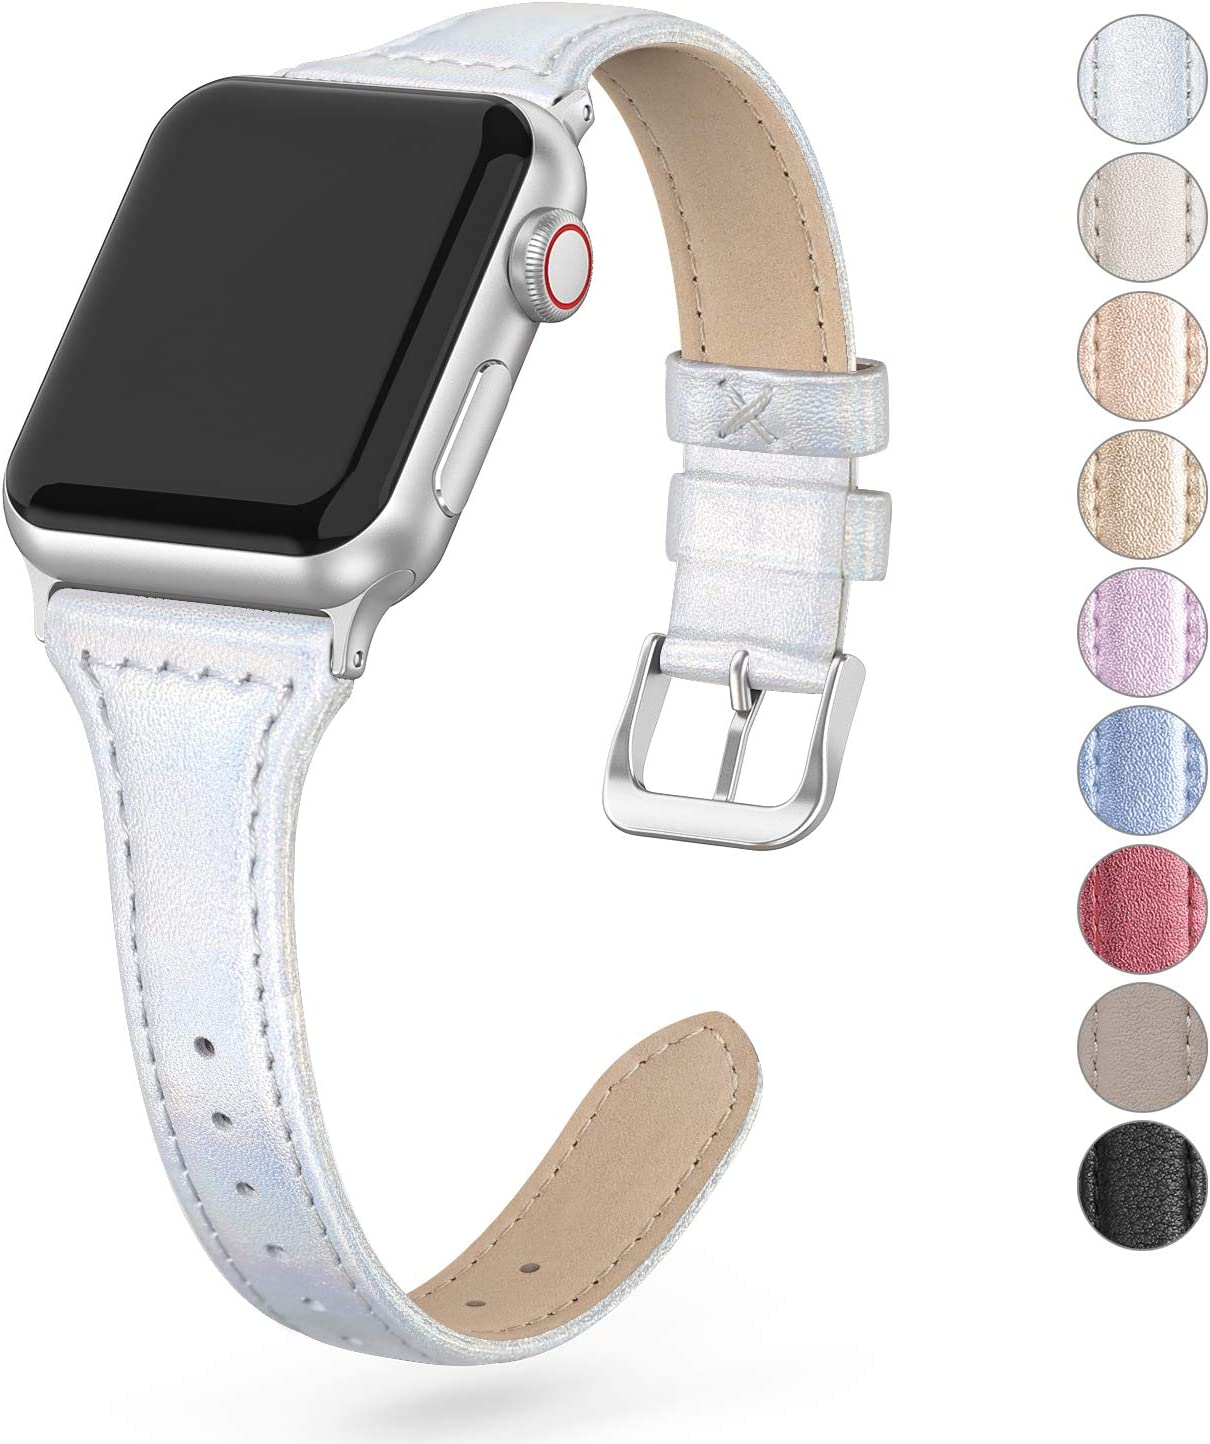 Bandiction Leather Band Compatible with Apple Watch Band 38mm Series 3 40mm Series 5, Slim Top Grain Leather Strap Women Replacement Leather Bands Compatible for iWatch Bands Series 6 SE 5 4 3 2 1